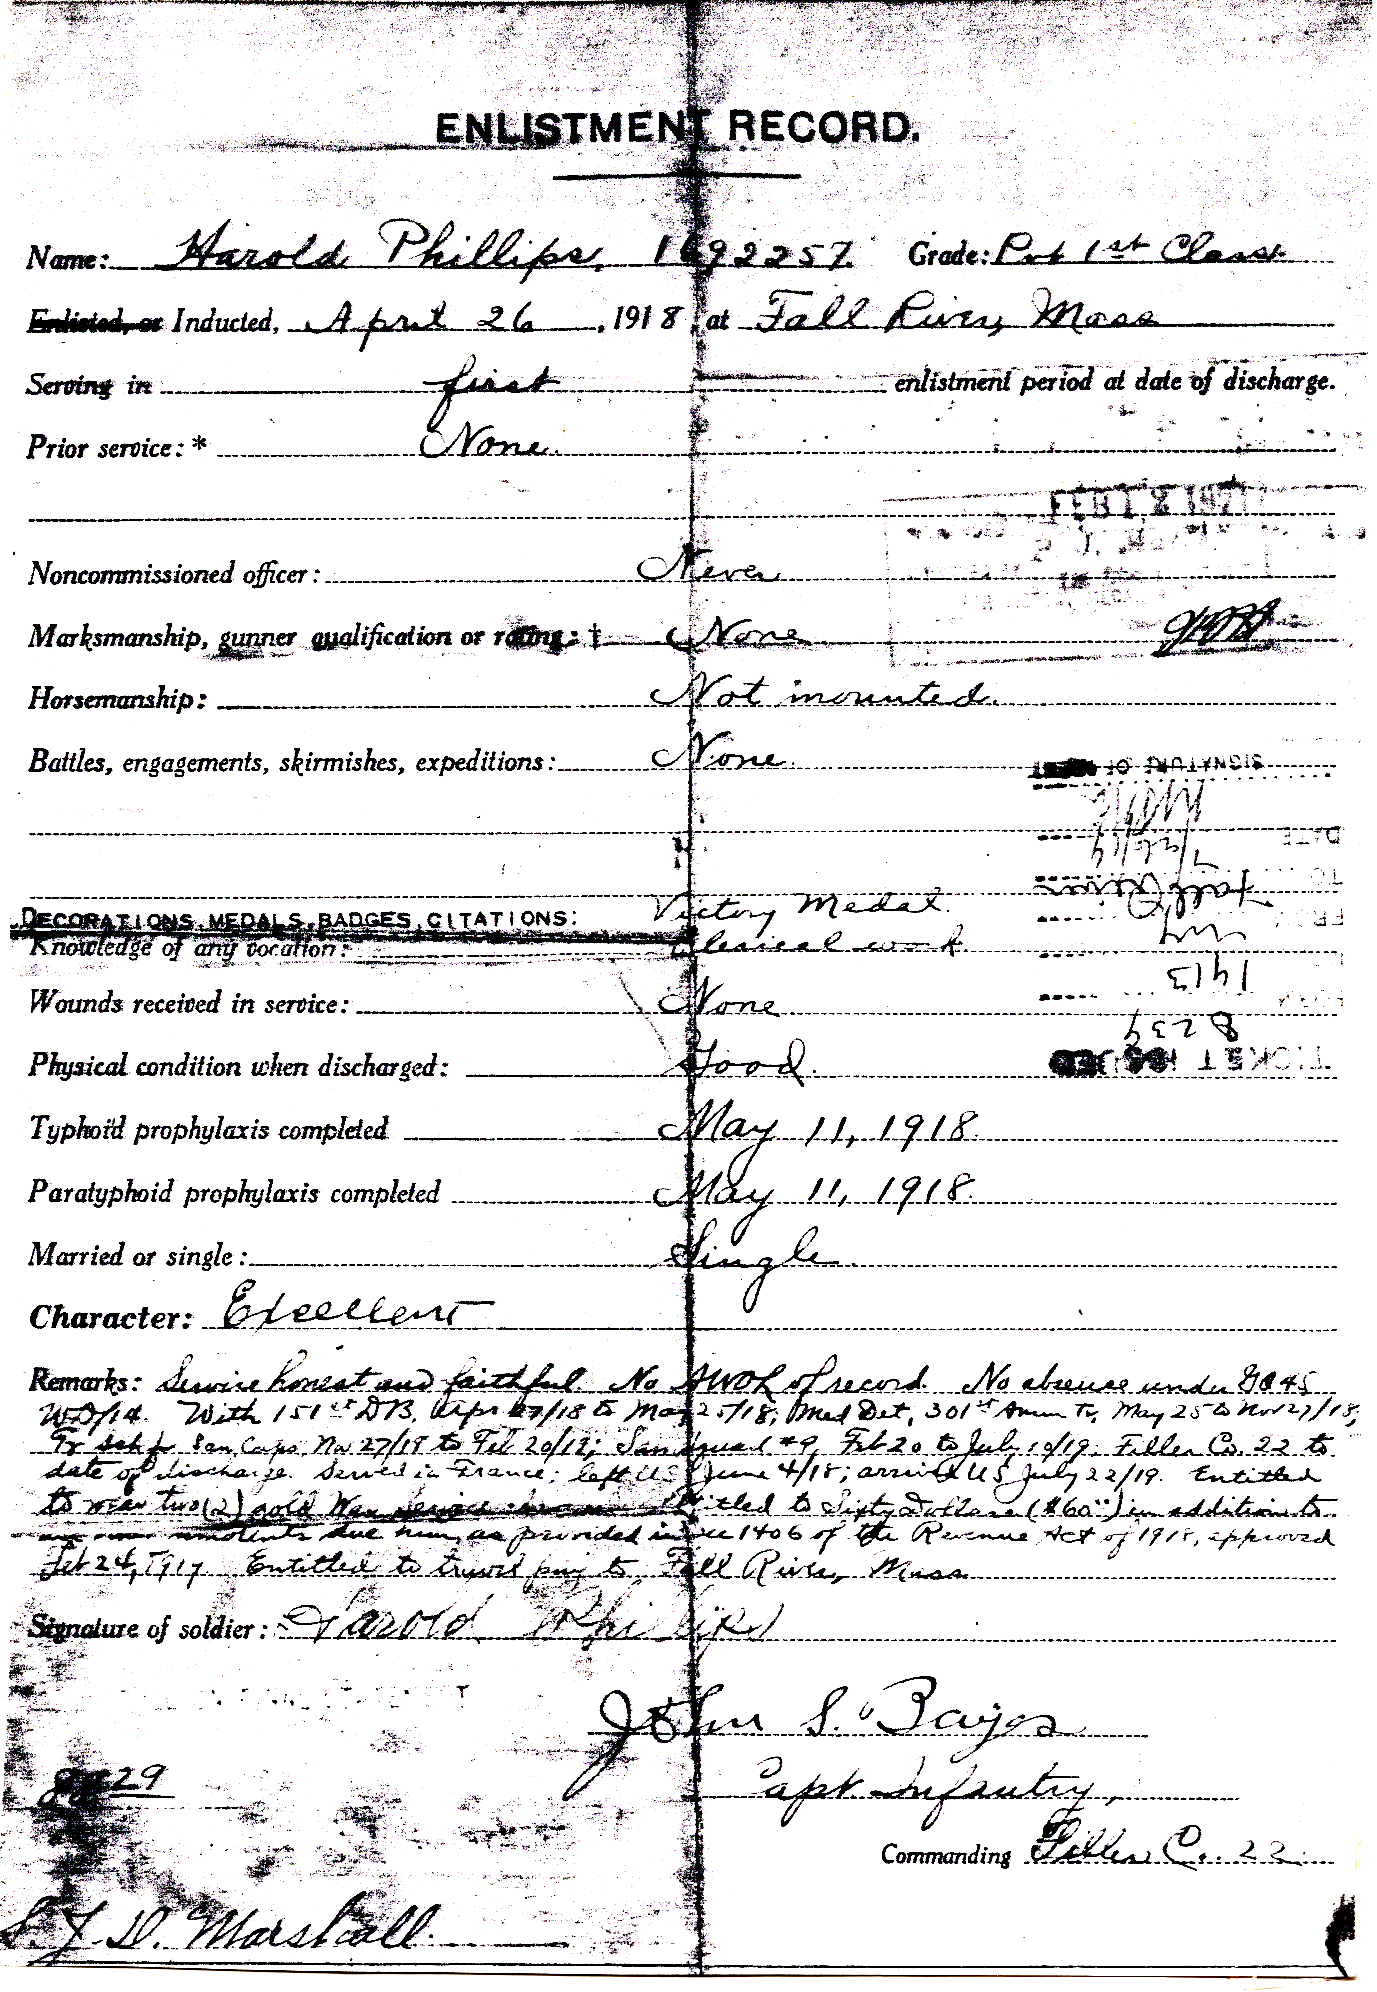 Harold Phillips US Army Enlistment 04-26-1918